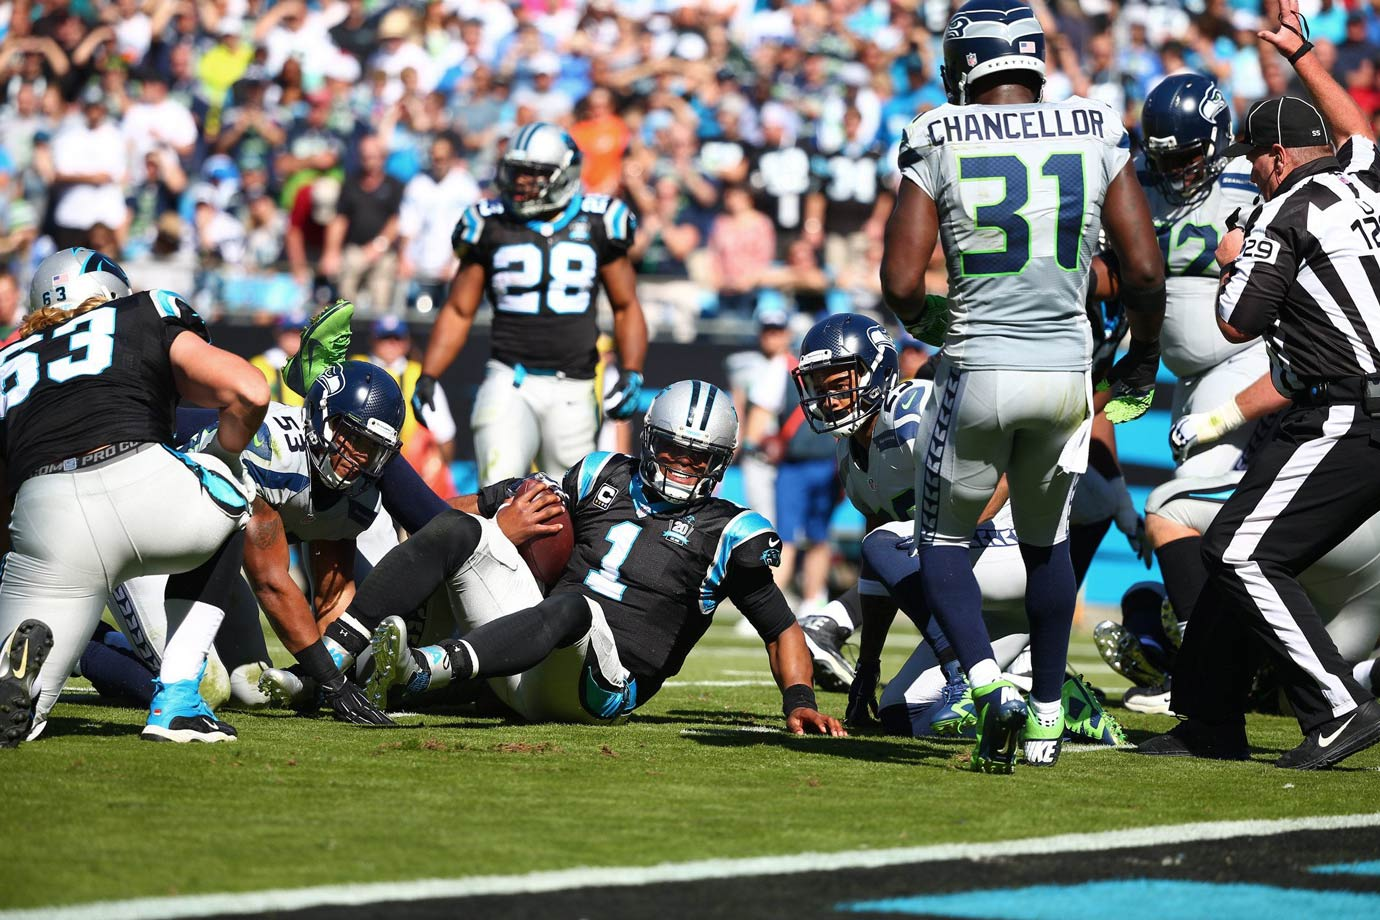 The Seahawks bounced back with a close win over the Carolina Panthers to improve to 4-3. In a defensive battle, Wilson threw his only touchdown pass to Luke Willson with 47 seconds left in the game to put Seattle ahead for good. Seattle's defense smothered Cam Newton, who produced fewer than 200 yards combined rushing and passing.